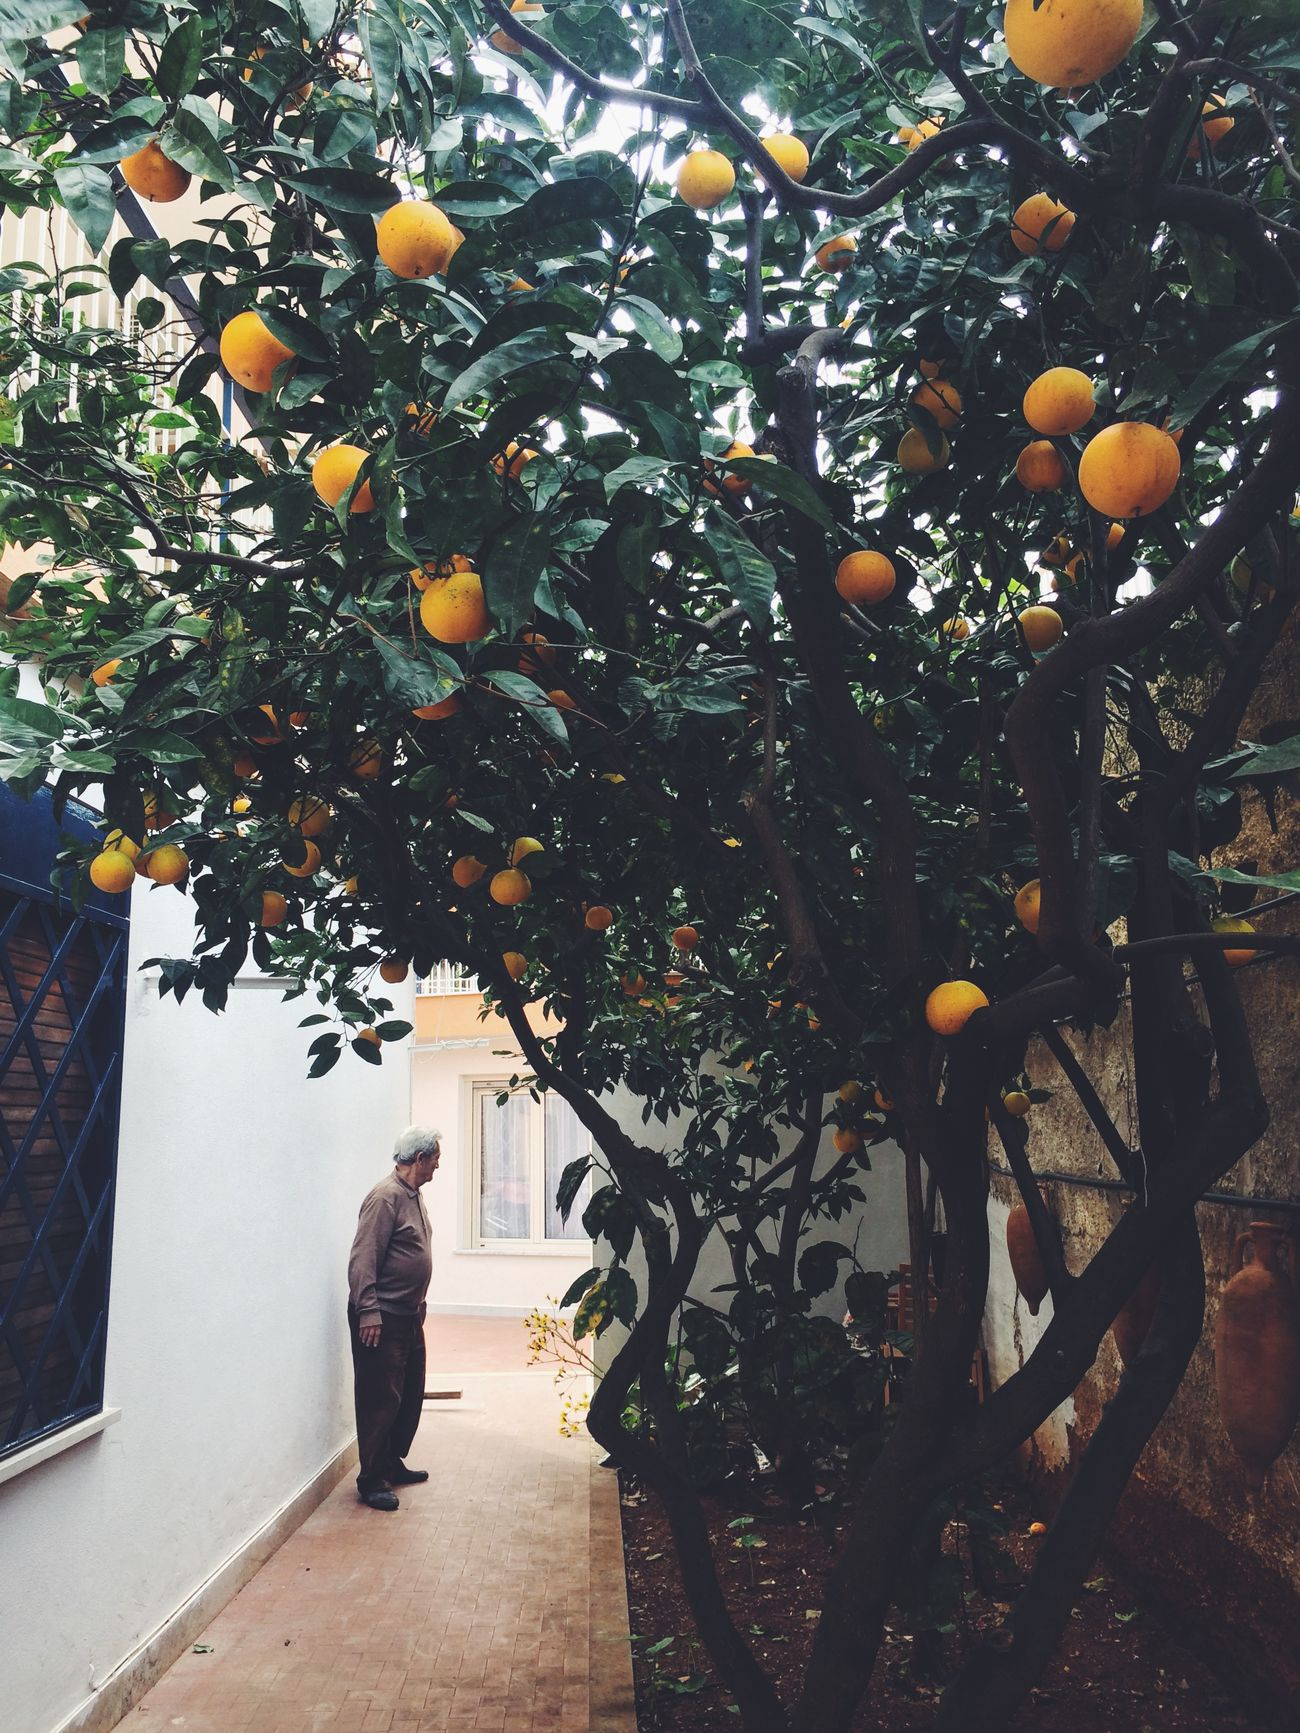 Adult Adults Only Beauty In Nature Branch Citrus Fruit Day Food Food And Drink Freshness Fruit Fruit Tree Growth Juicy Nature One Person Orange - Fruit Orange Tree Outdoors People Tree